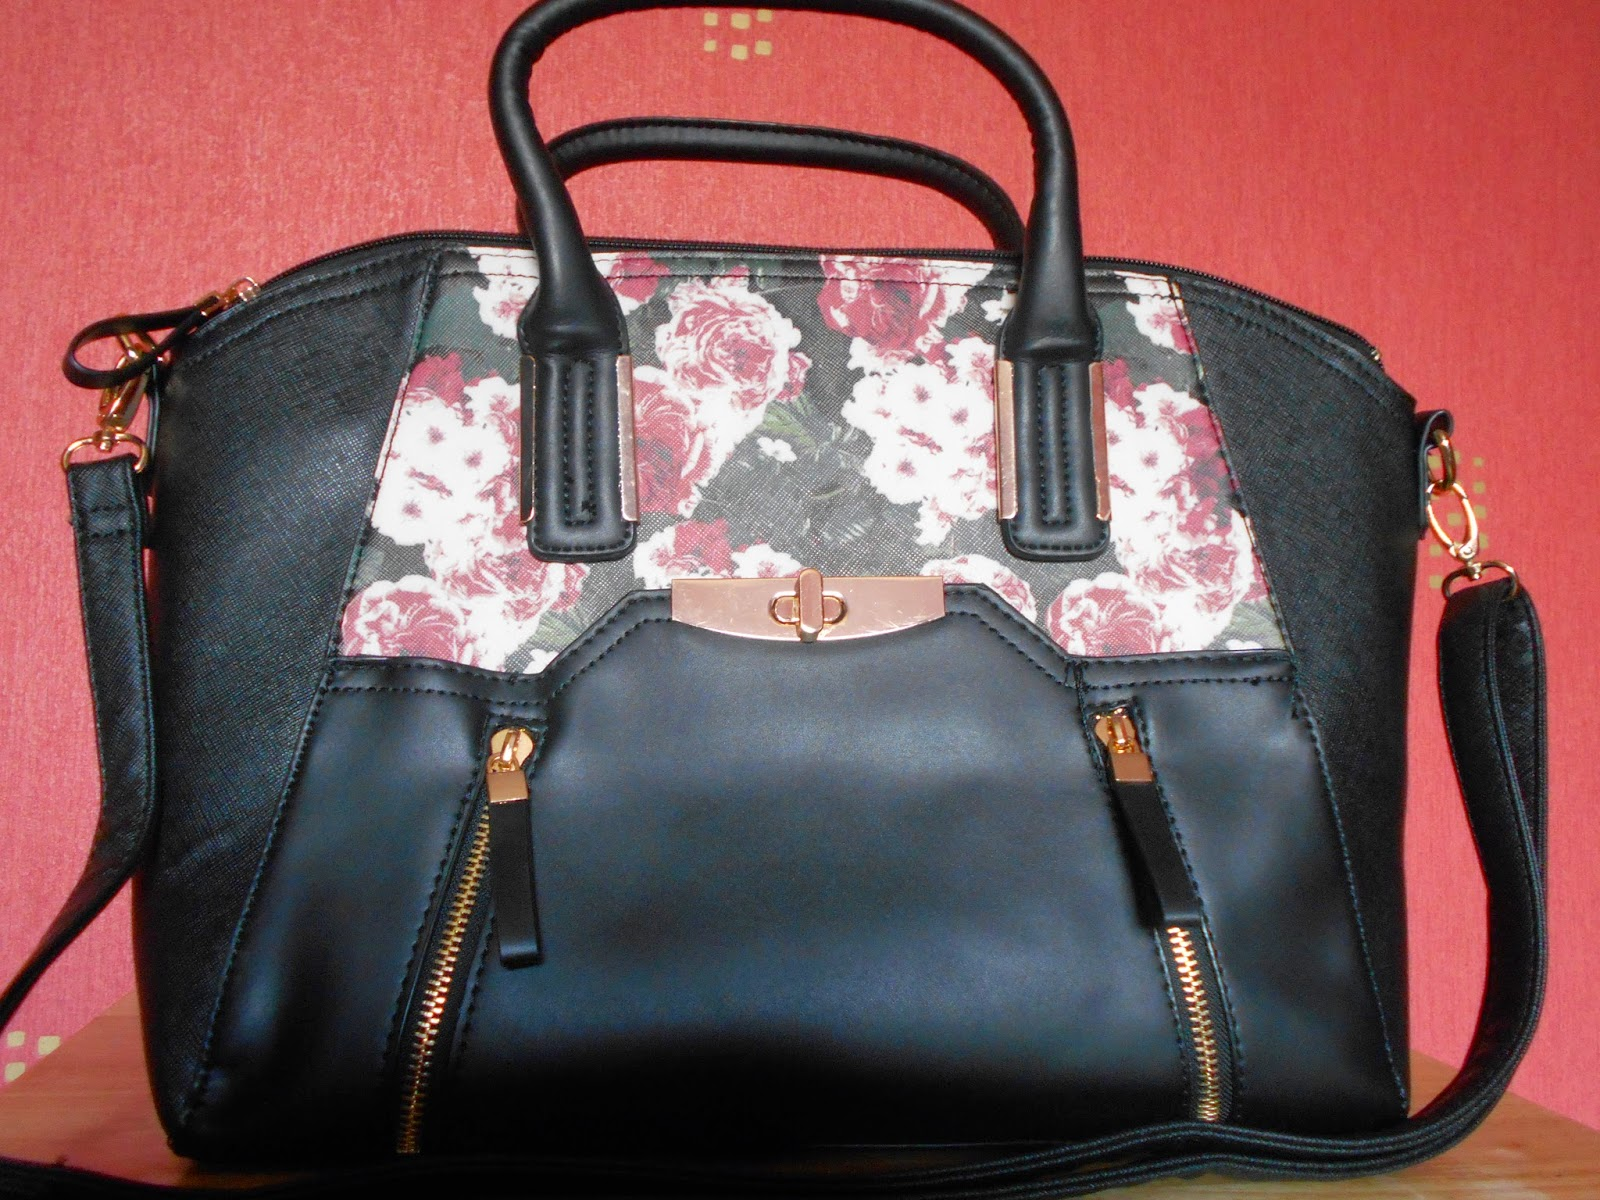 New Look: Handbag